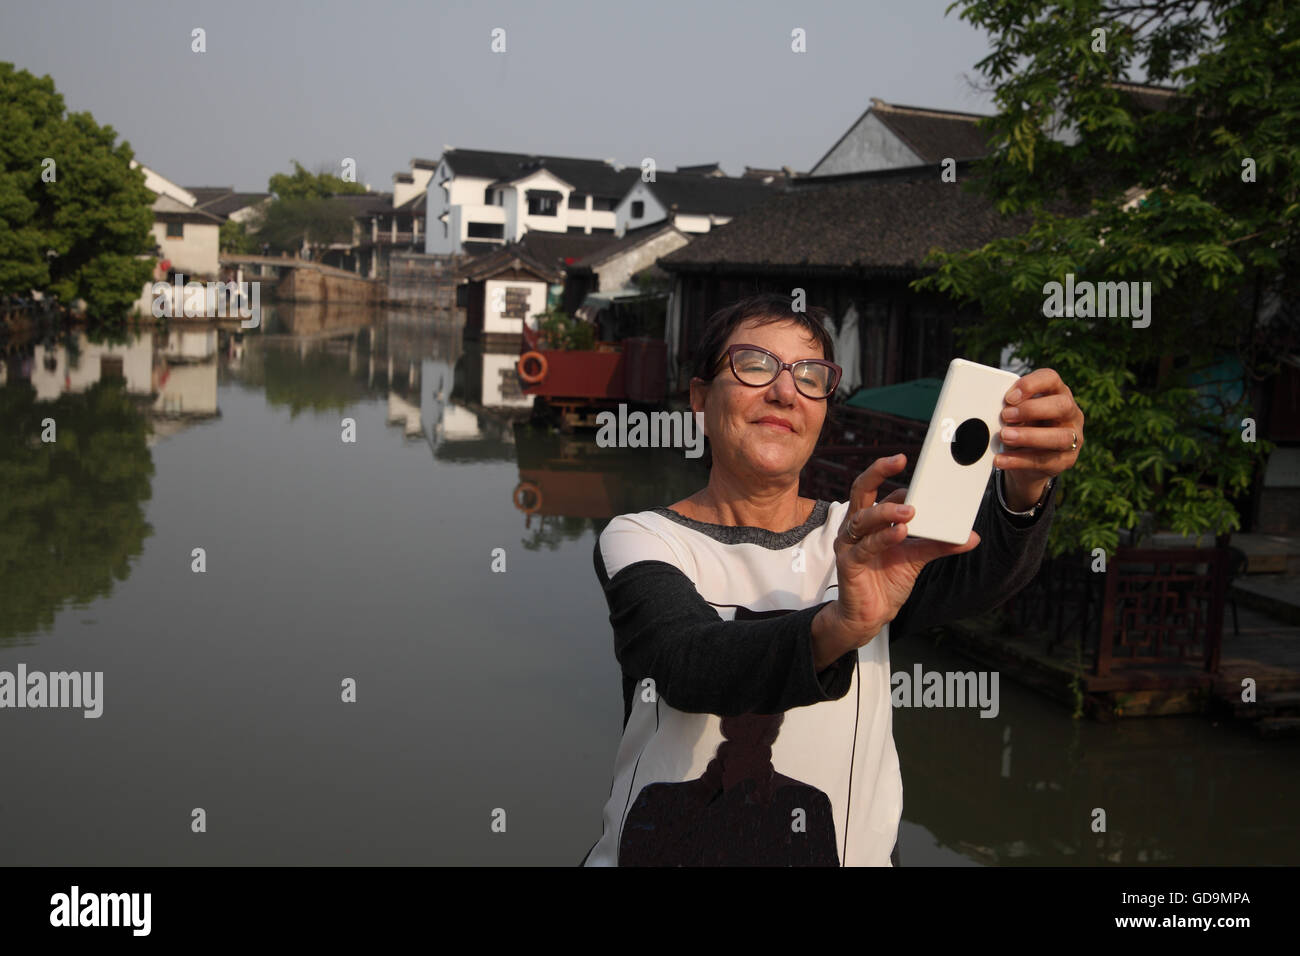 A 70 year old senior citizen Israeli woman, a tourist, is using her smartphone to take a selfie over Tongli's - Stock Image